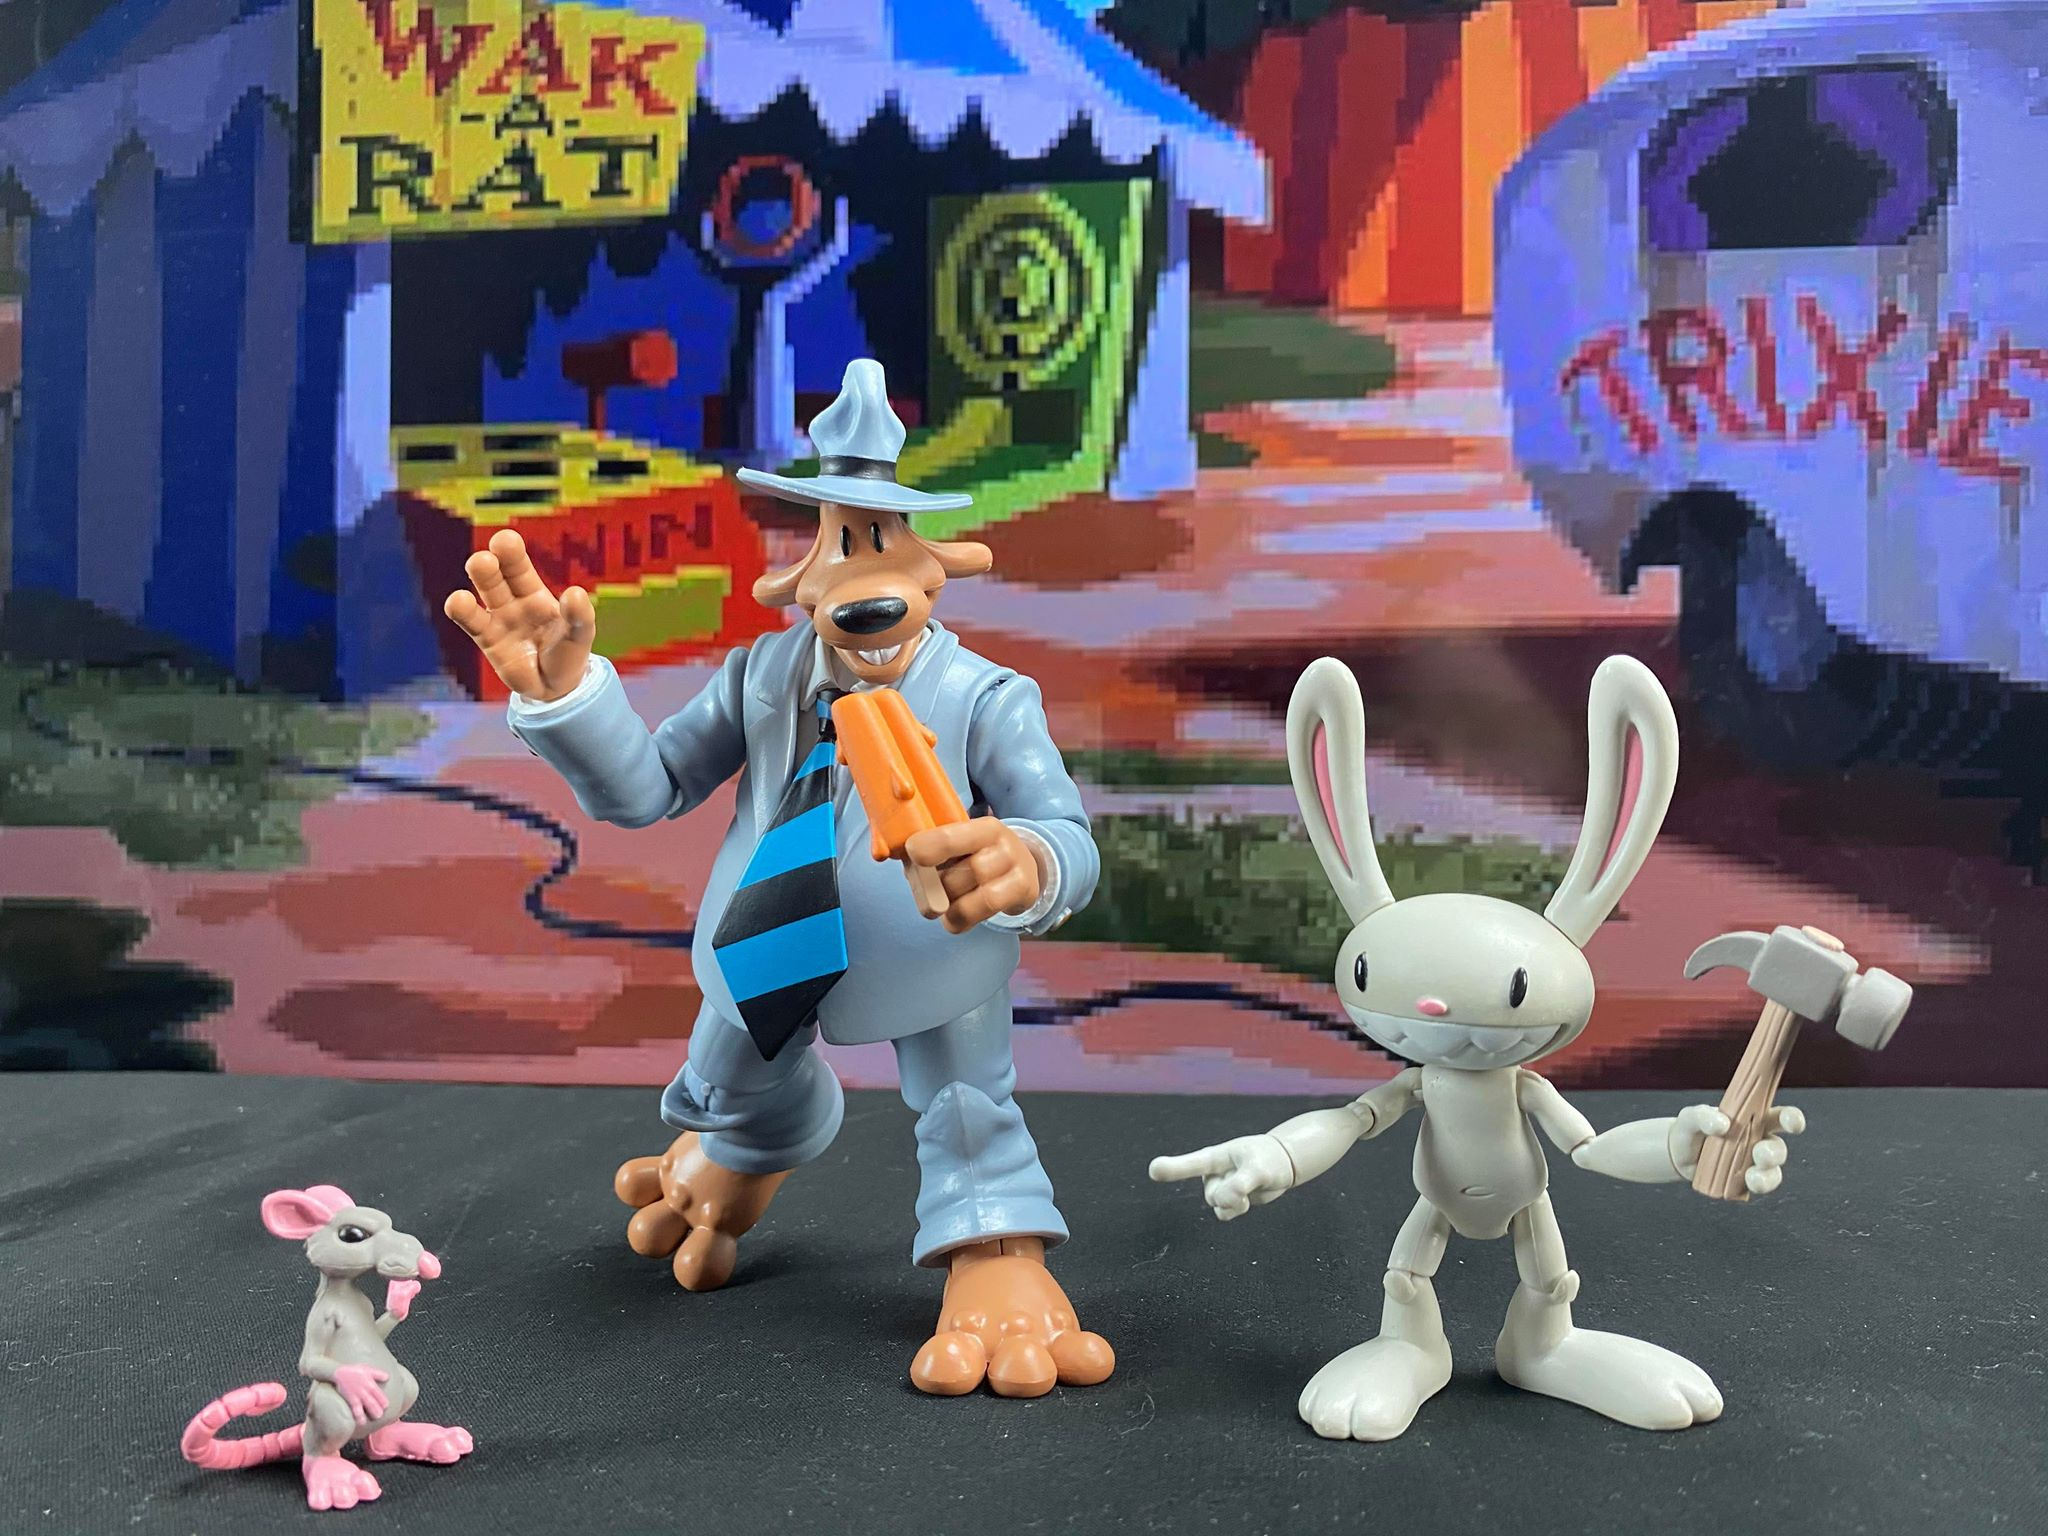 Sam & Max action figures